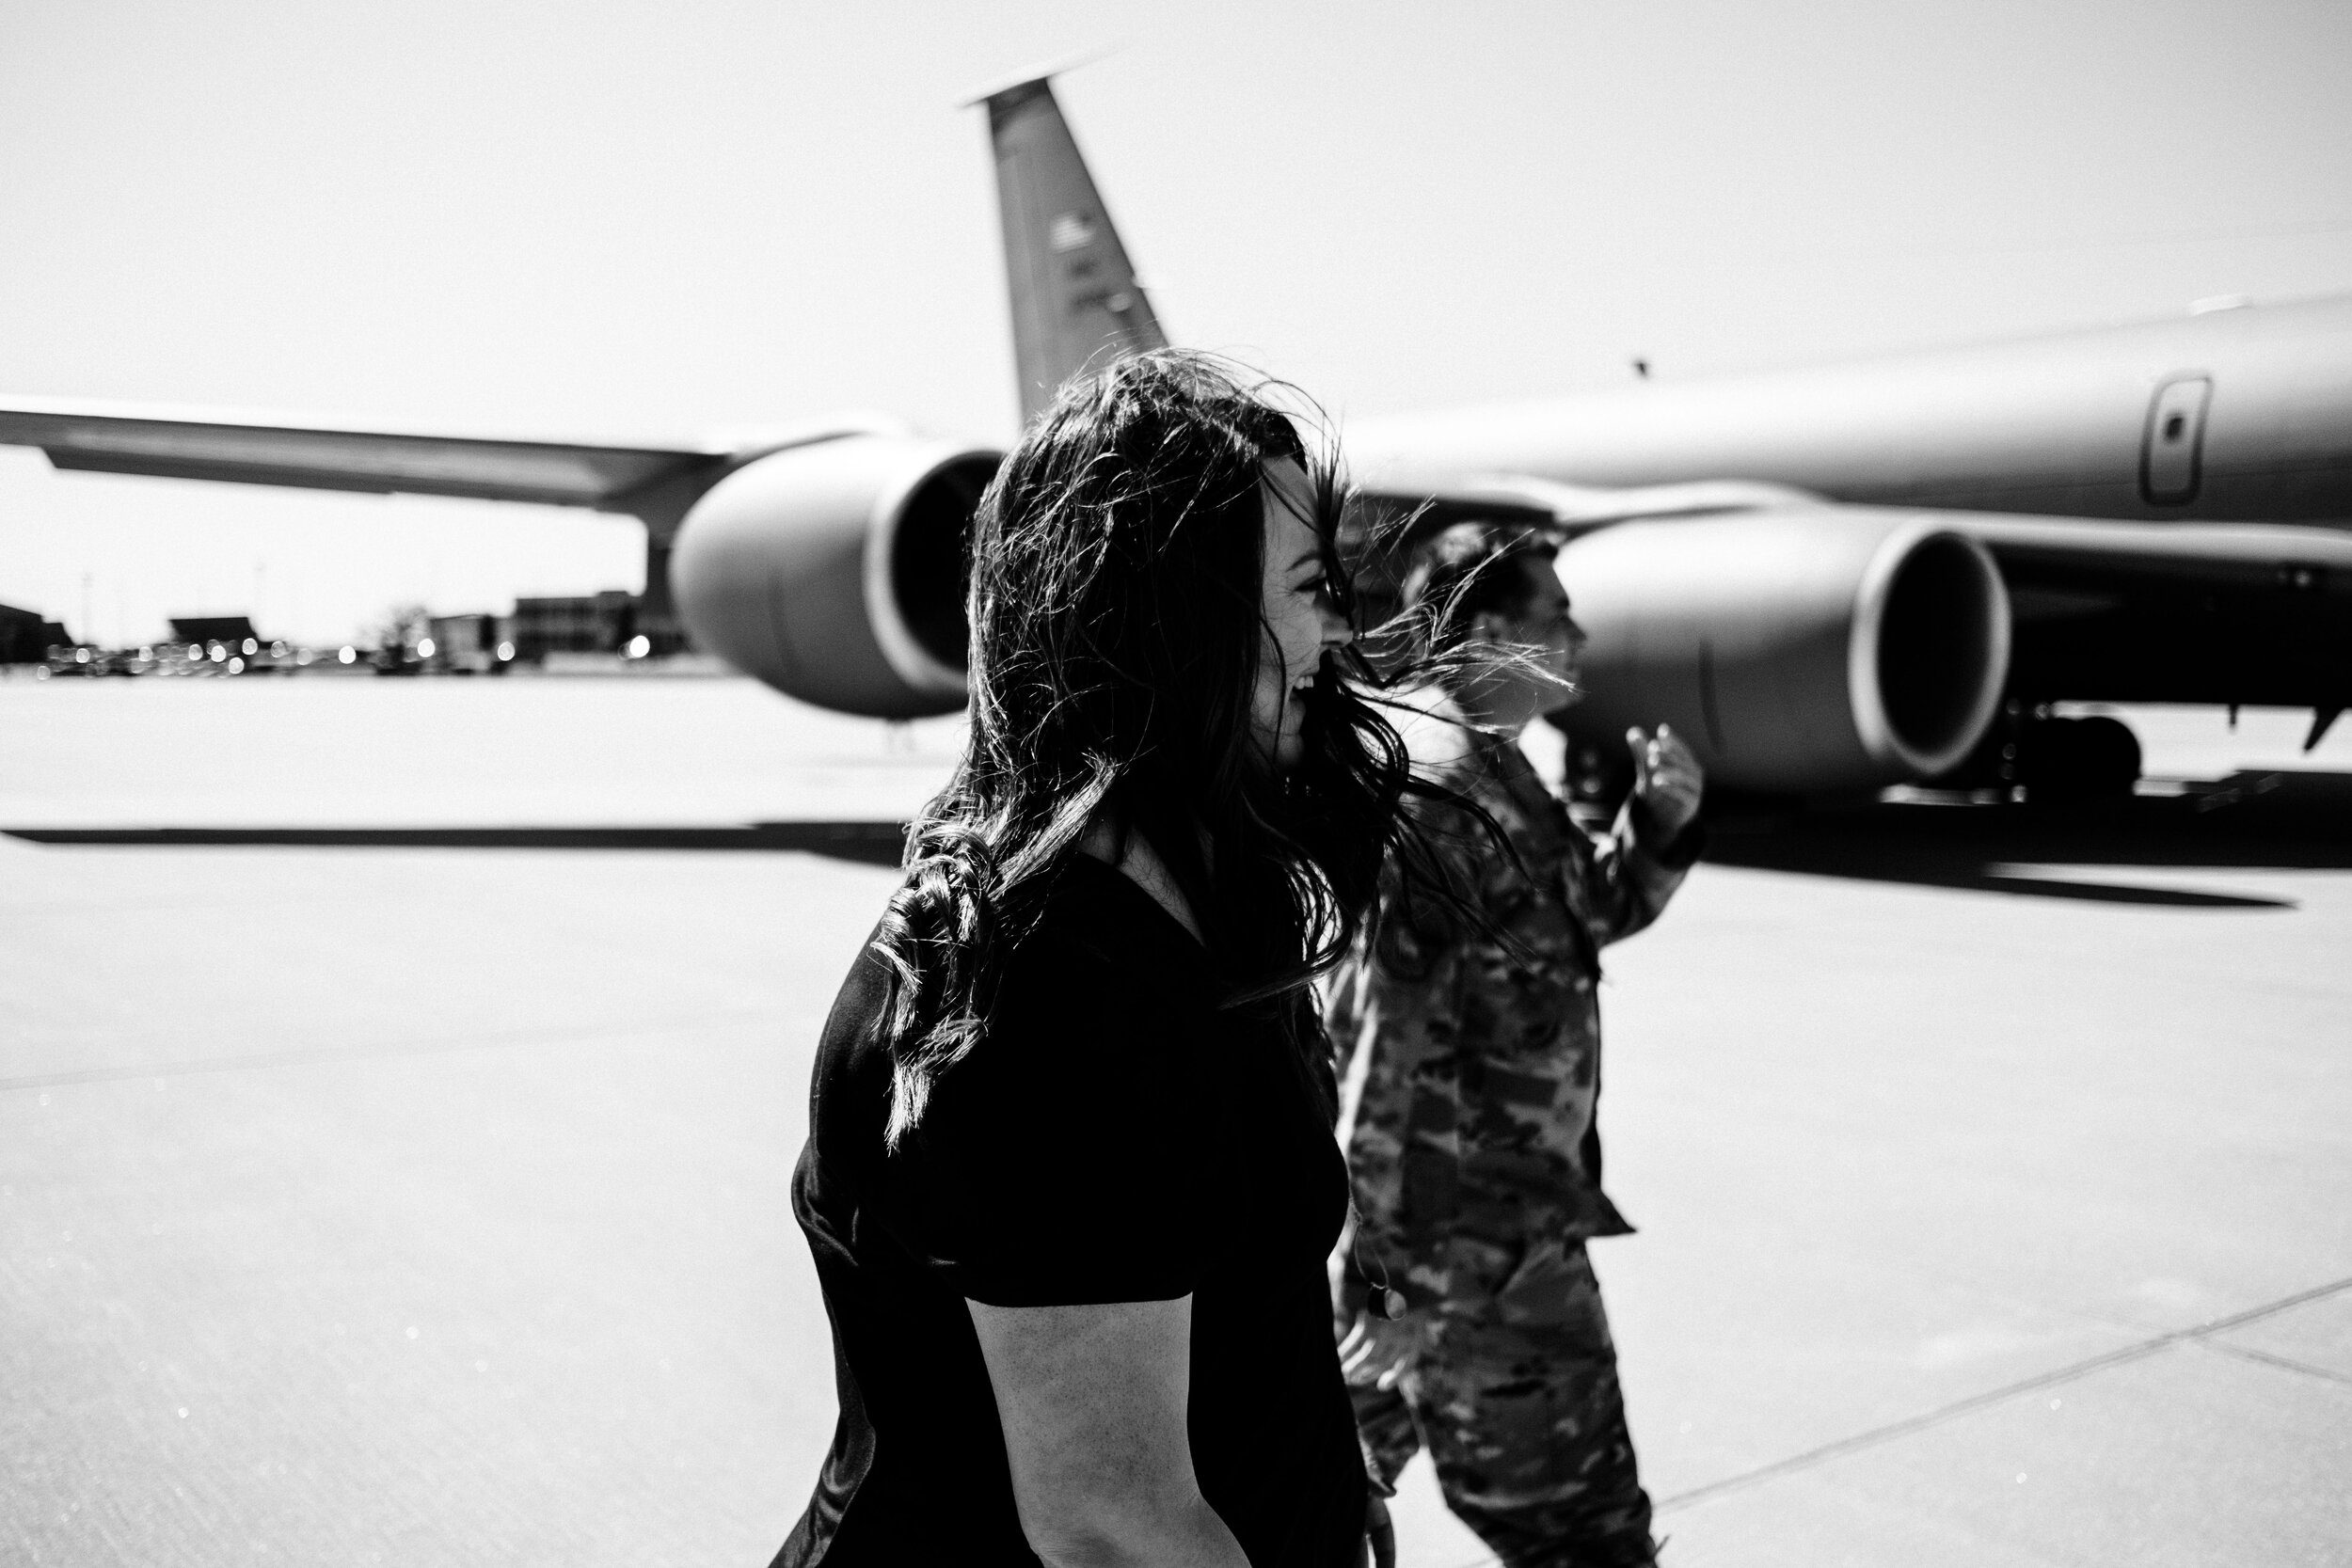 weeks_deployment_homecoming_©seekevingophotography2019-9.jpg